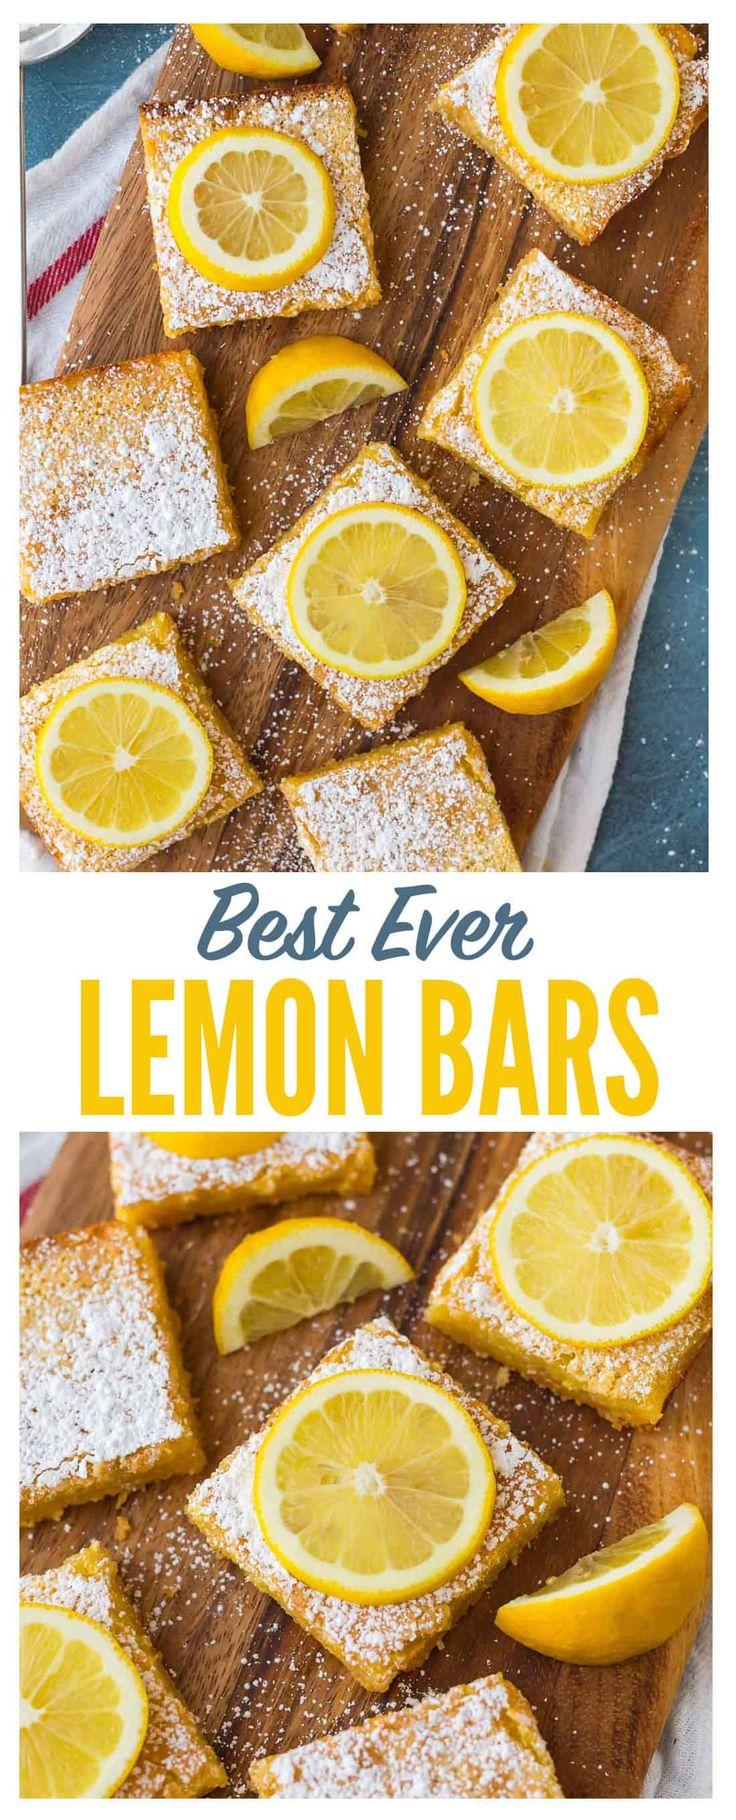 The BEST Lemon Bars recipe! Lusciously creamy and bursting with bright lemon flavor, these easy lemon squares with shortbread base take minutes to prep and always wow the crowd. Better than the Pioneer Woman, Ina Garten, and Paula Deen combined! #easy #lemonbars  via @wellplated